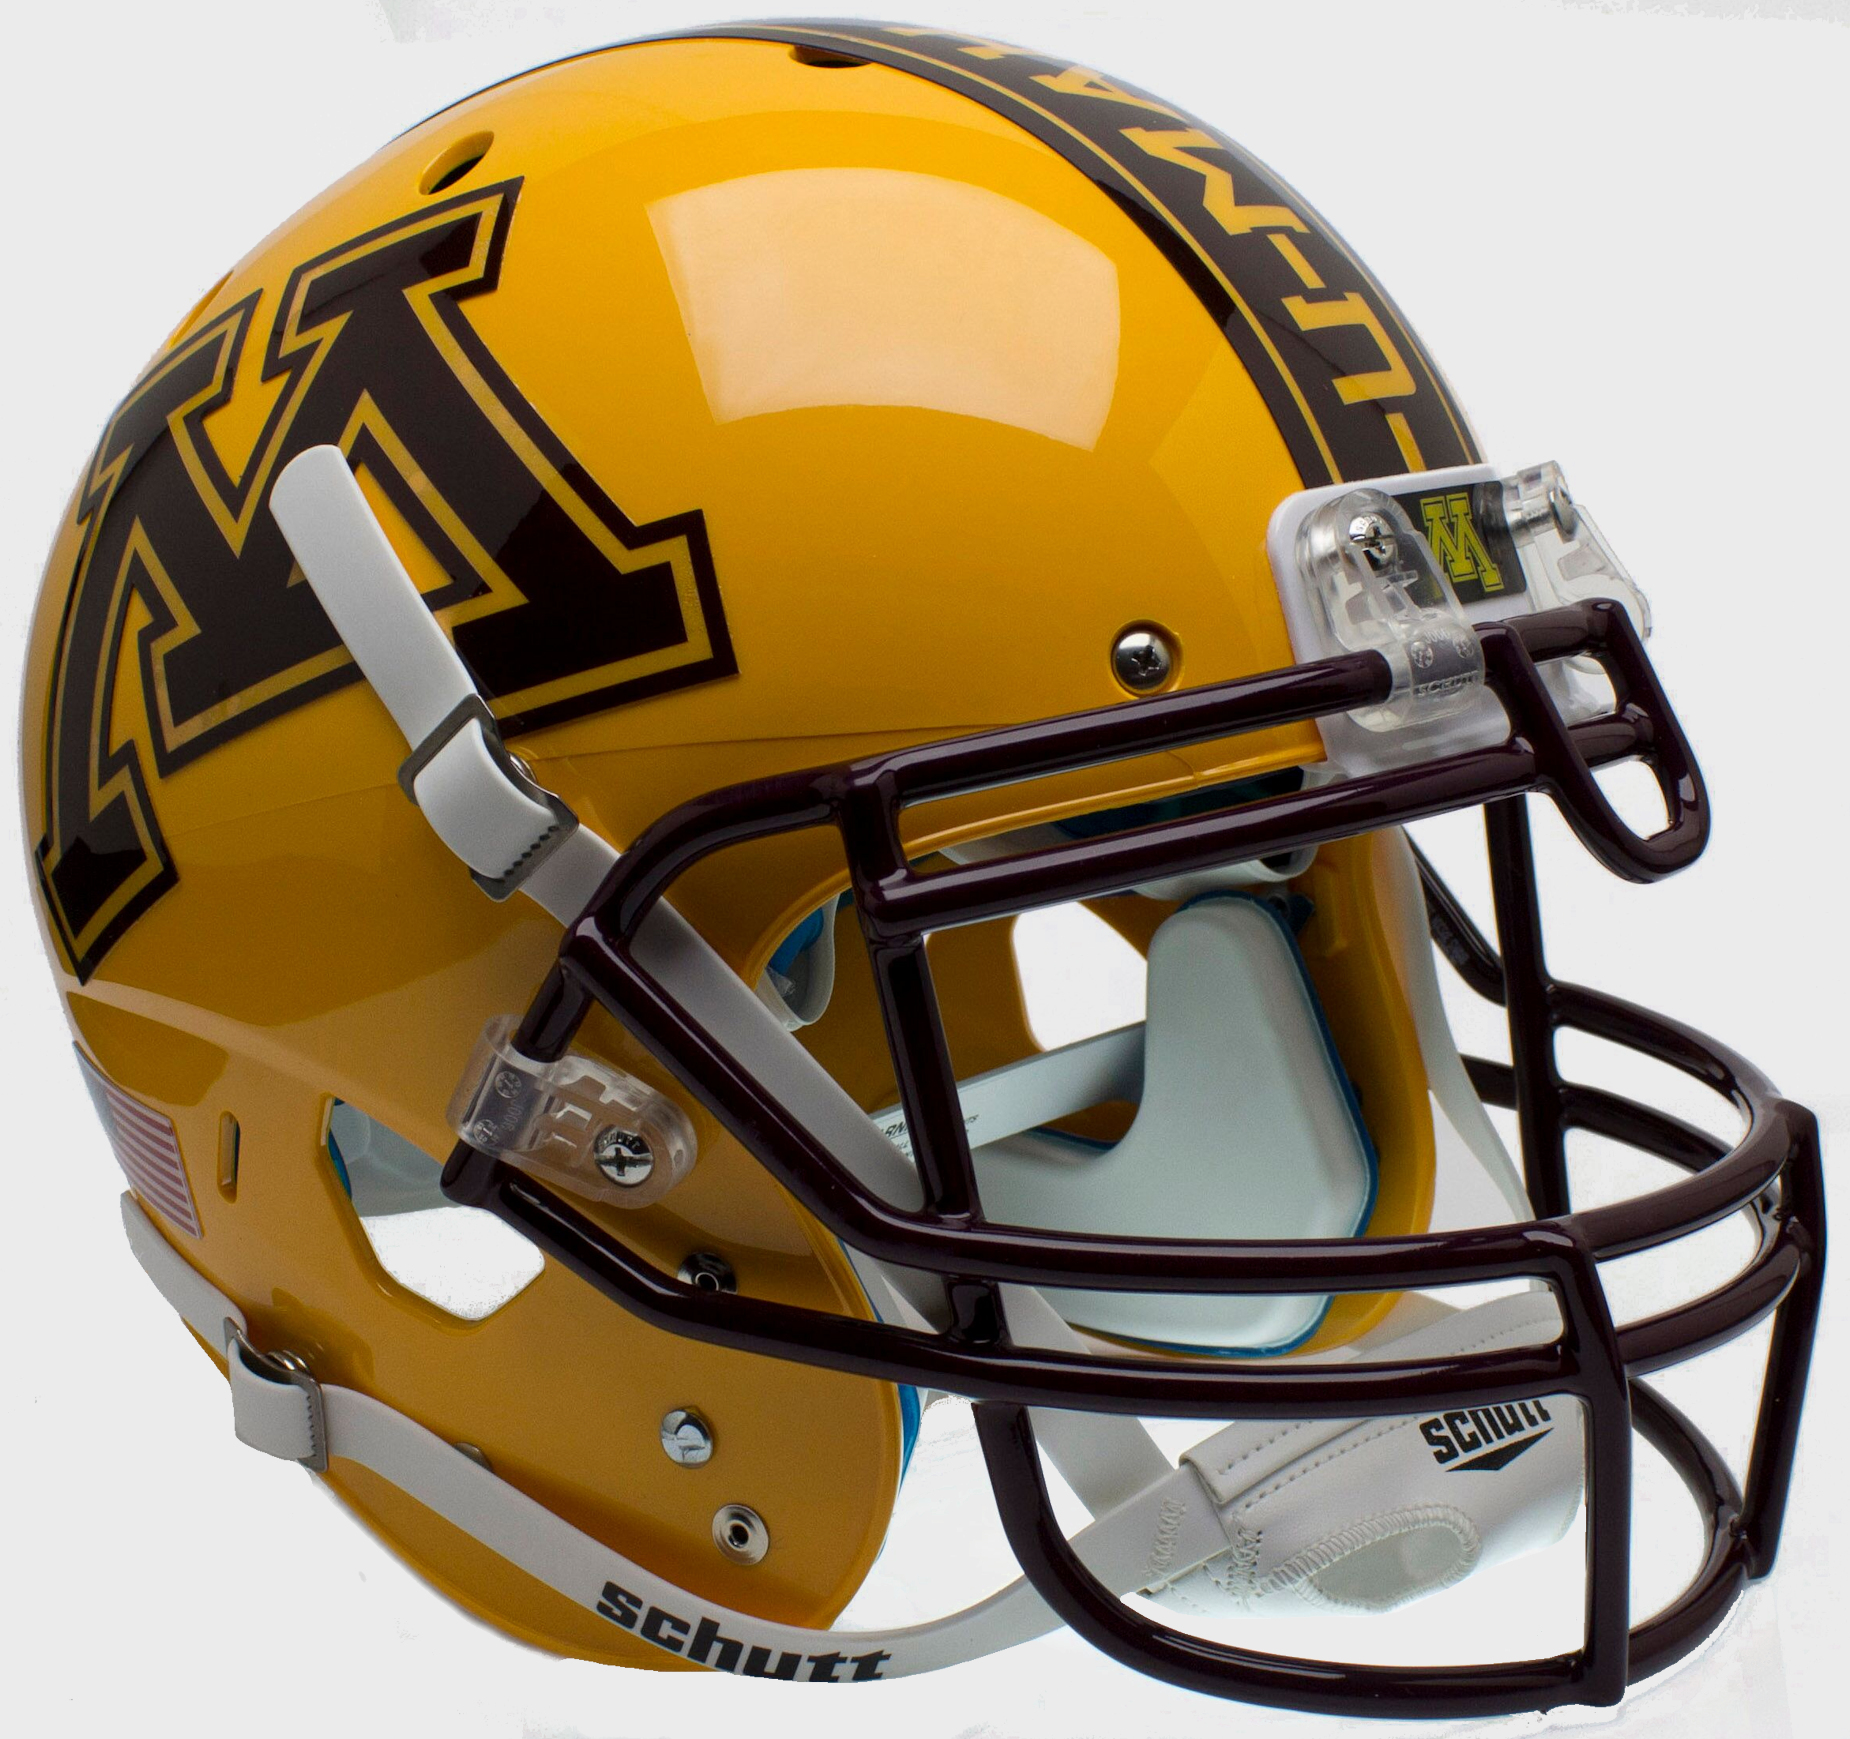 Minnesota Golden Gophers Authentic College XP Football Helmet Schutt  <B>Gold</B>